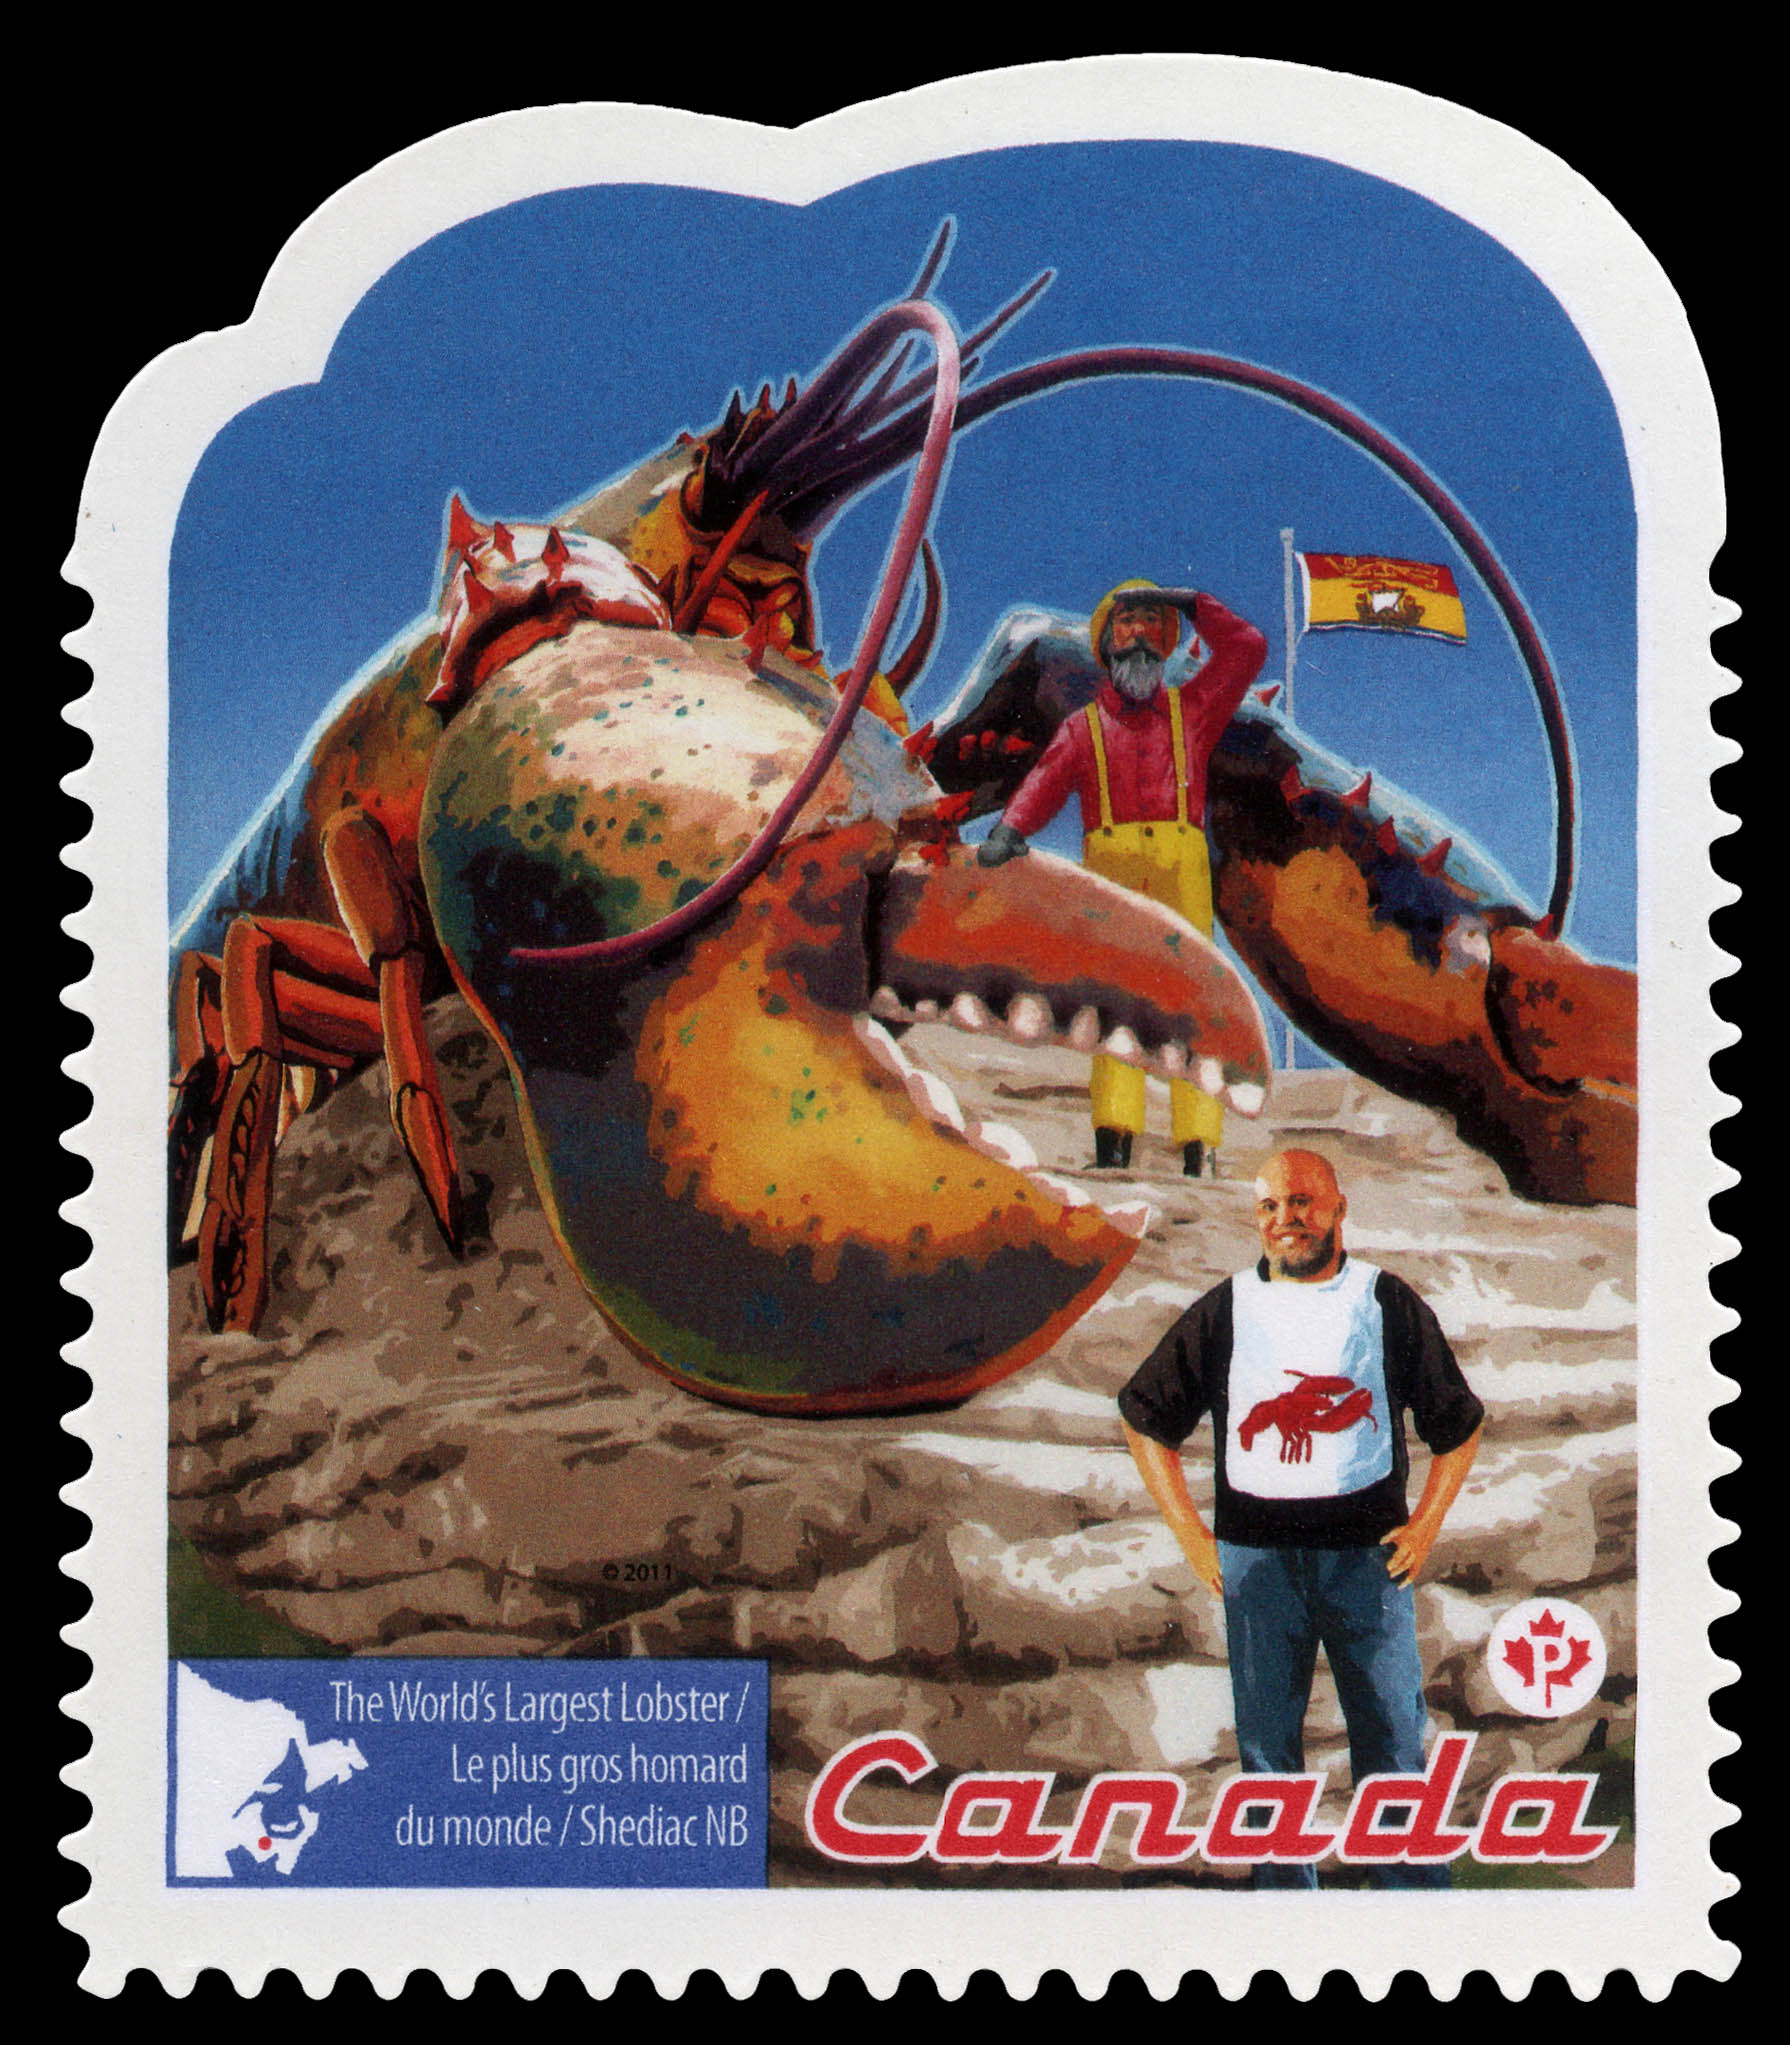 The World's Largest Lobster - Shediac NB Canada Postage Stamp | Roadside Attractions